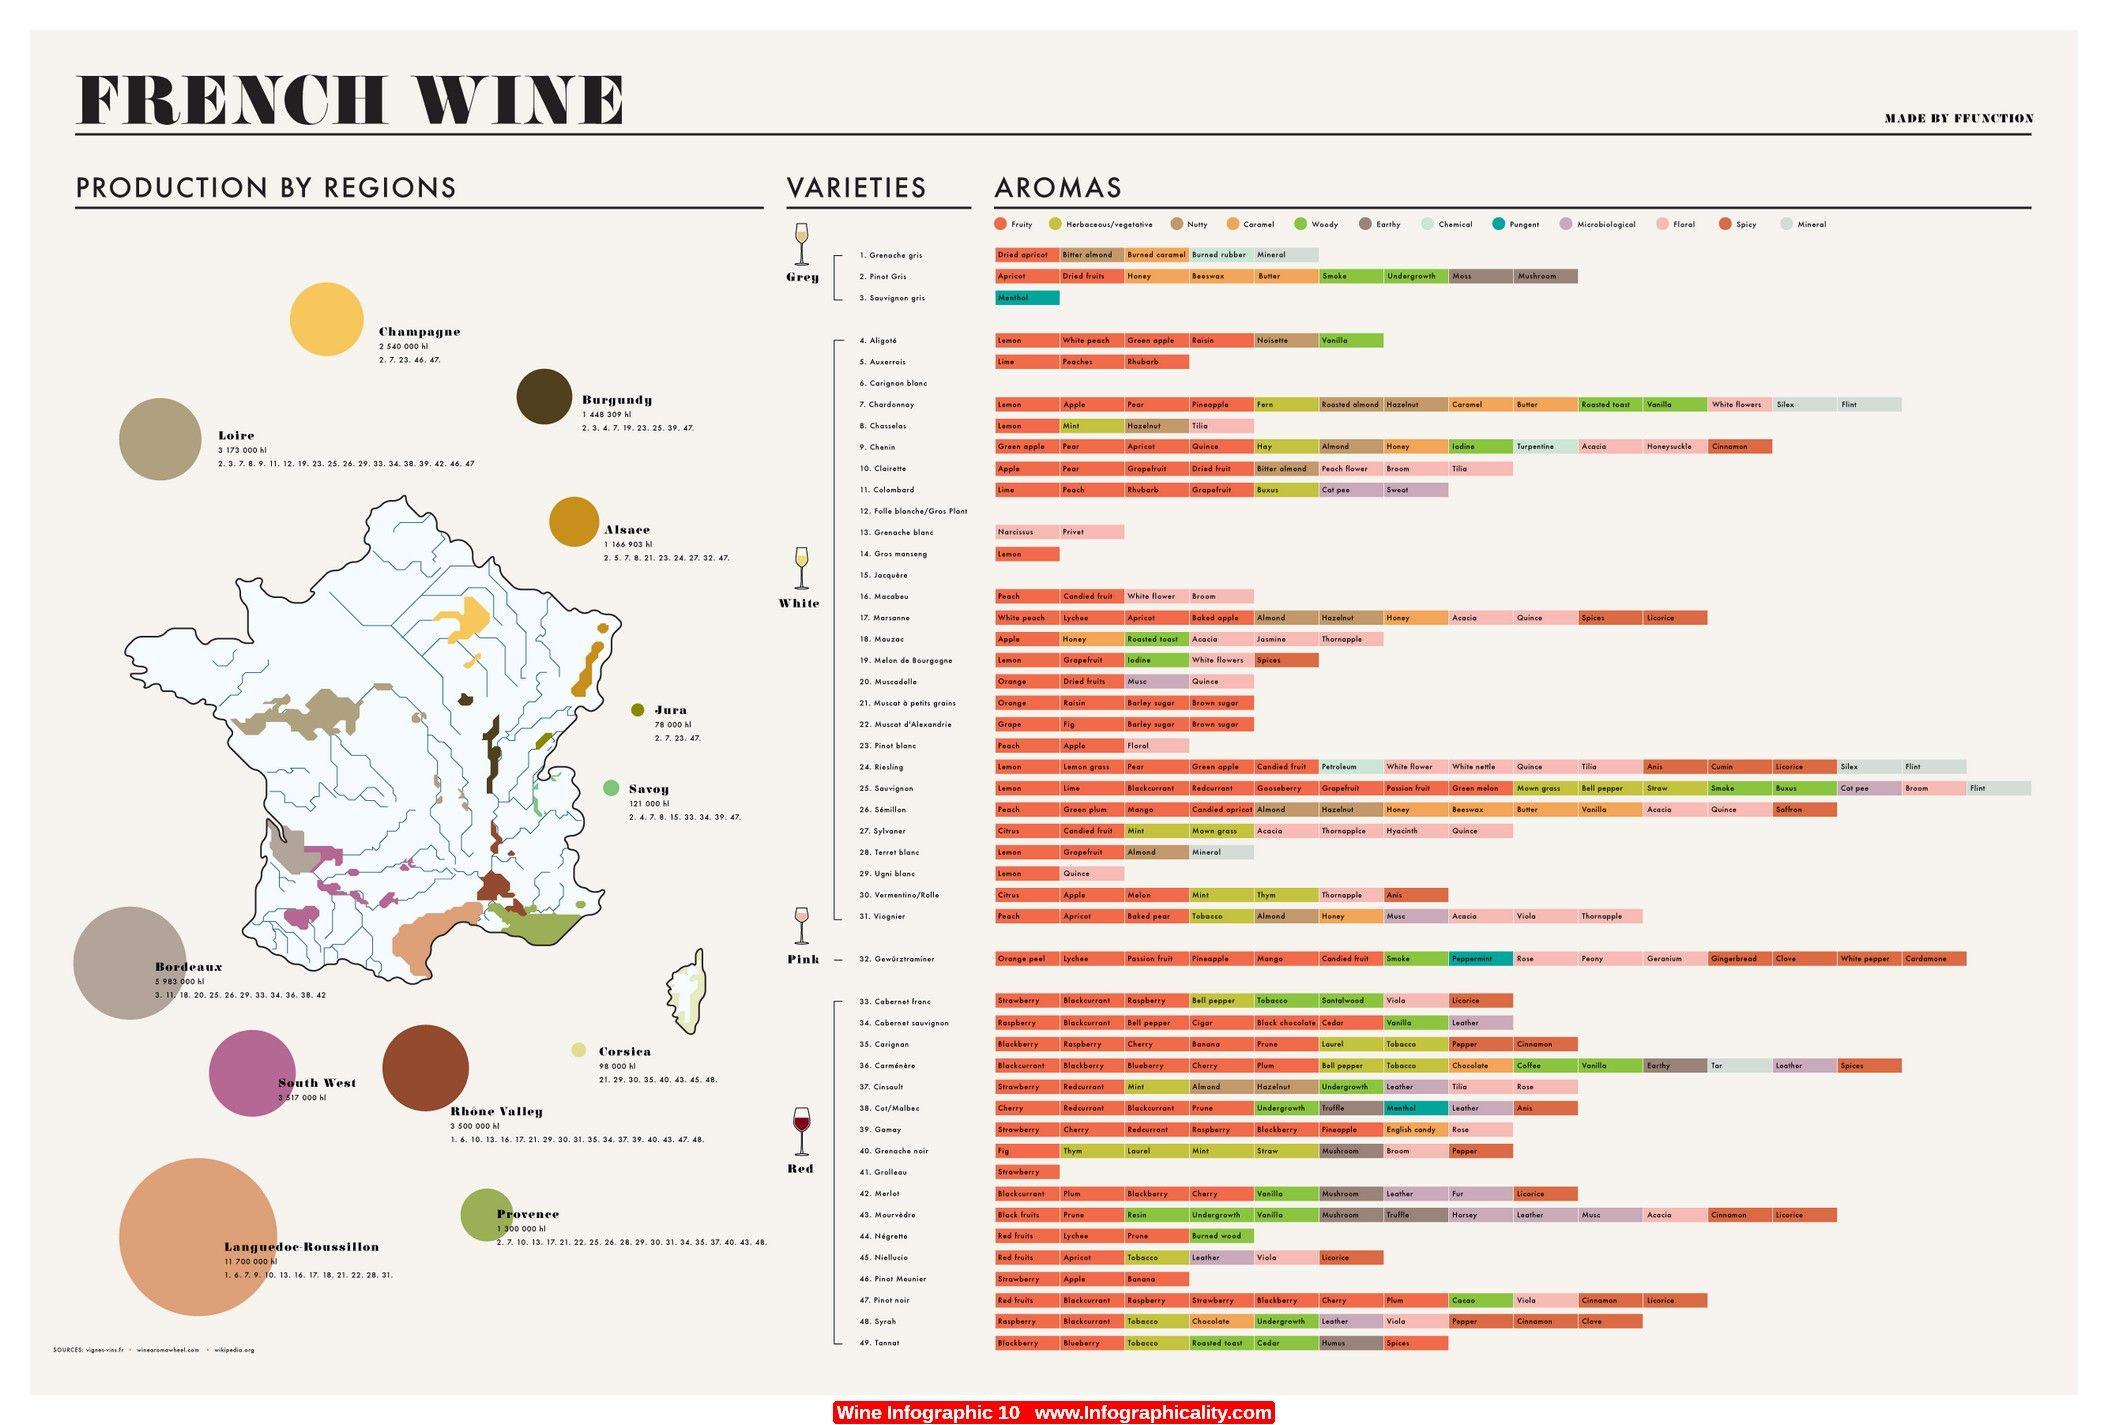 Wine Infographic 10 - http://infographicality.com/wine-infographic-10-2/